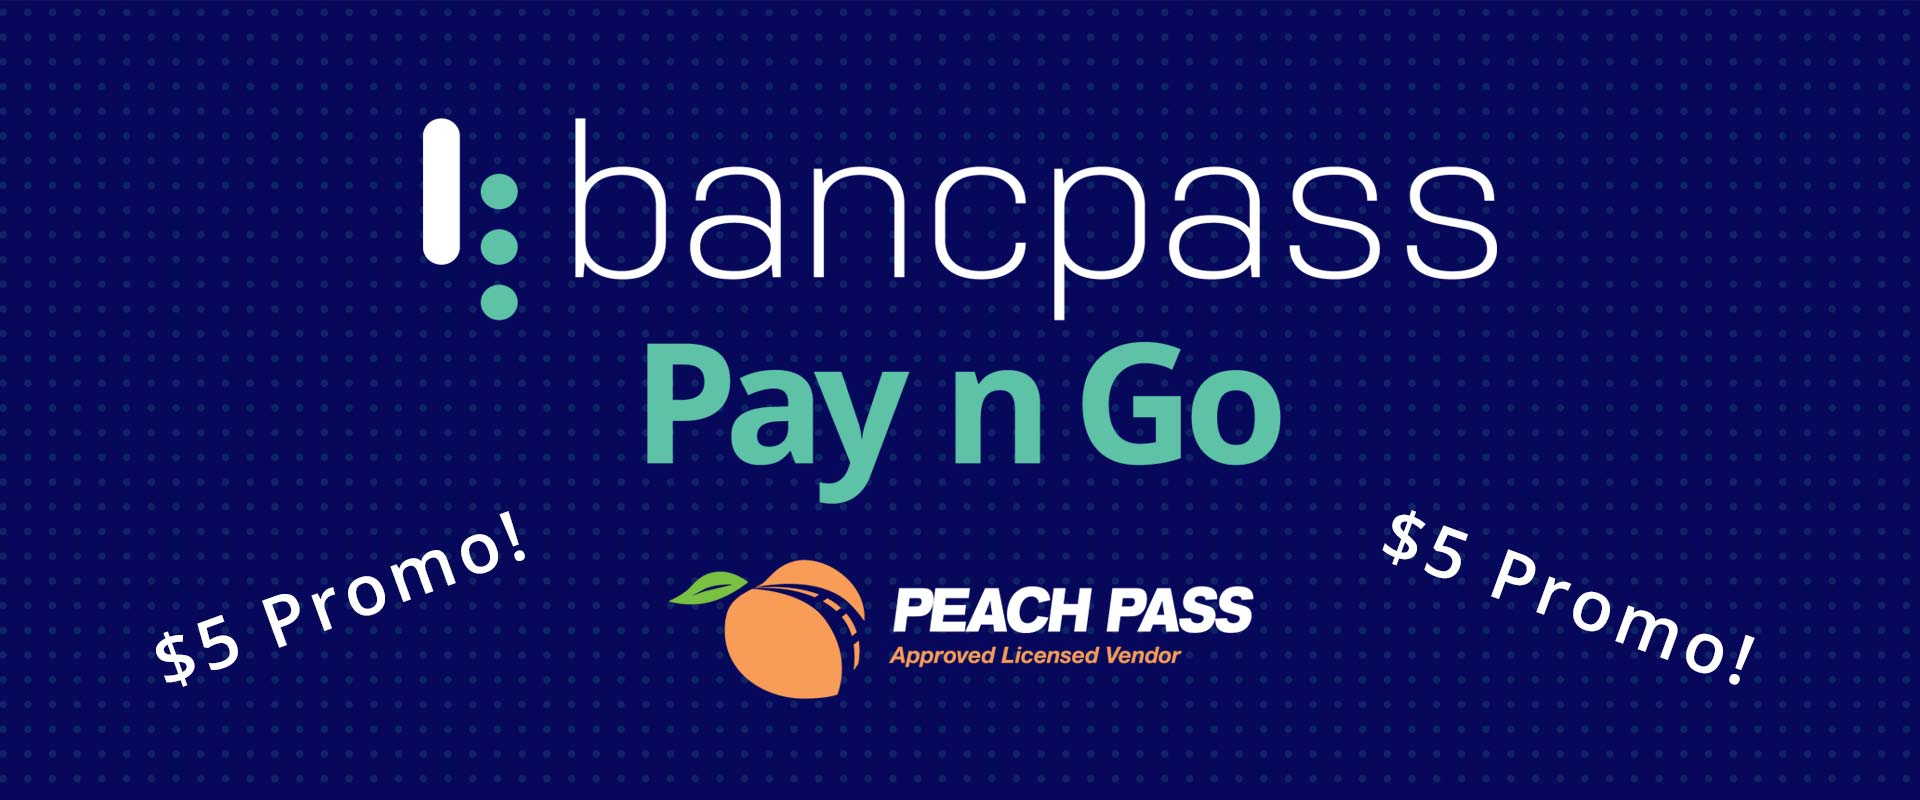 $5 Promo - Transition from Peach Pass to Pay n Go - BancPass